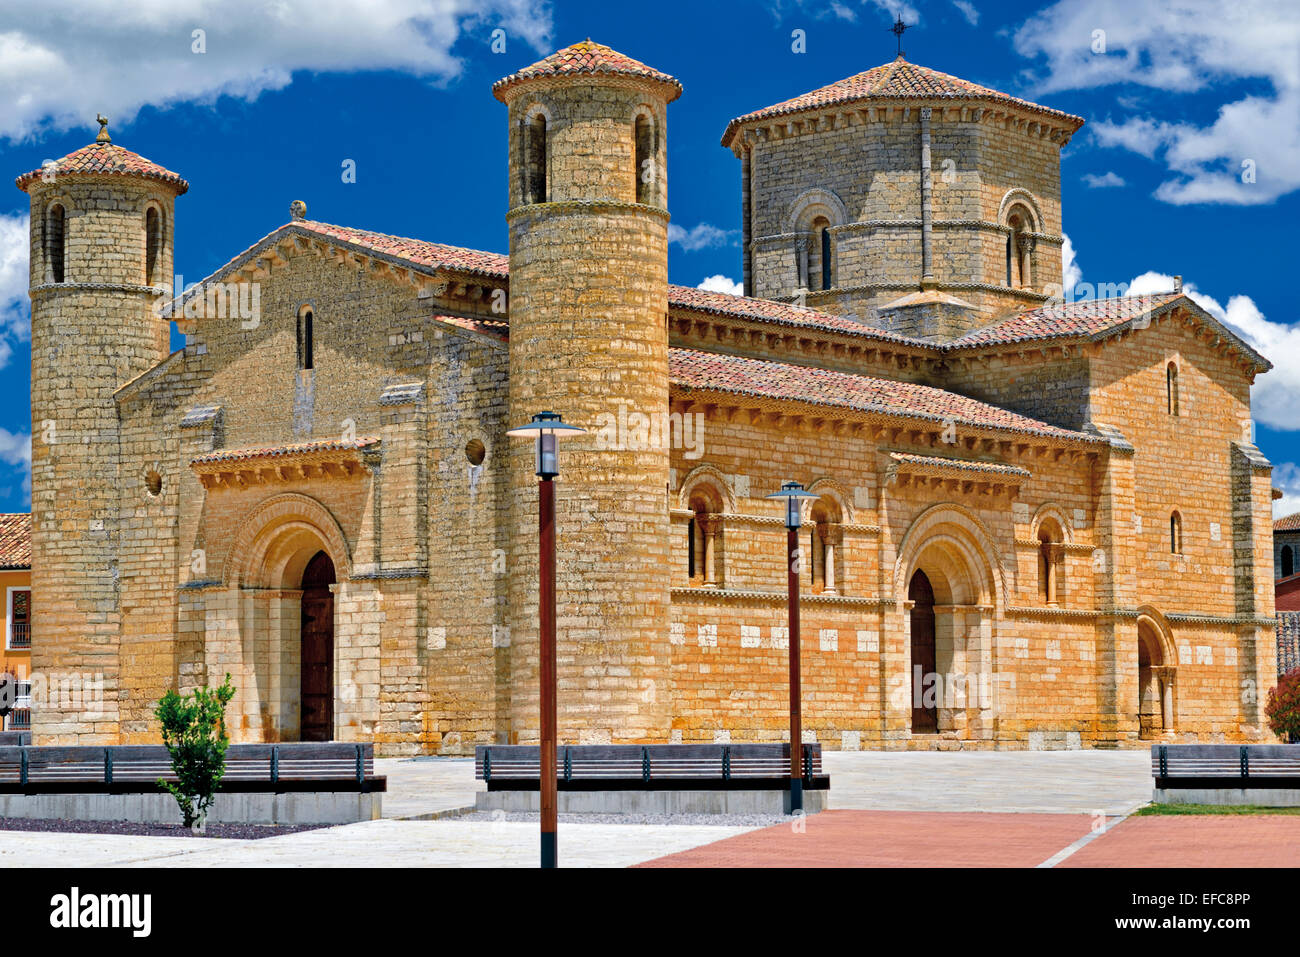 Spain, Castilla-Leon: Romanesque church San Martin in Fromista - Stock Image